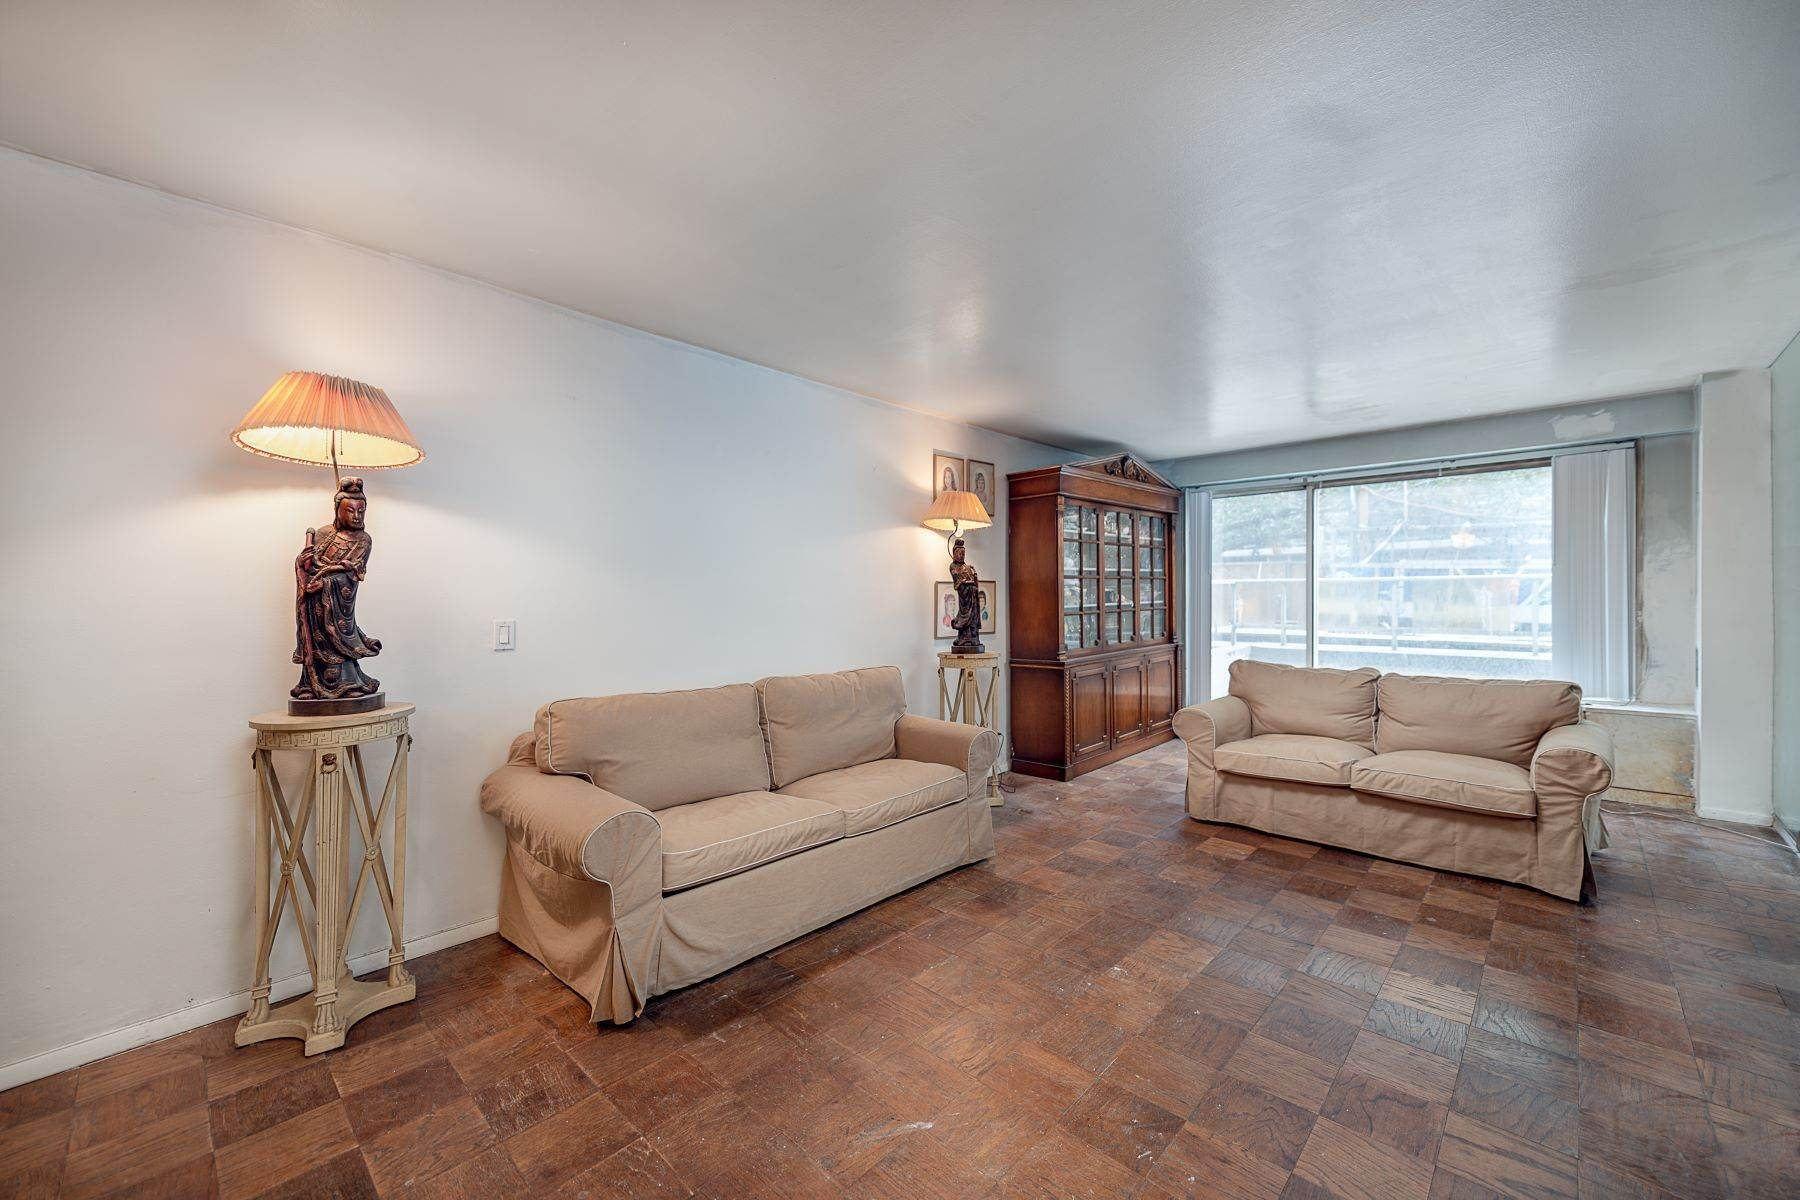 Co-op Properties for Sale at 370 East 76th Street, Apt B204 New York, New York 10021 United States